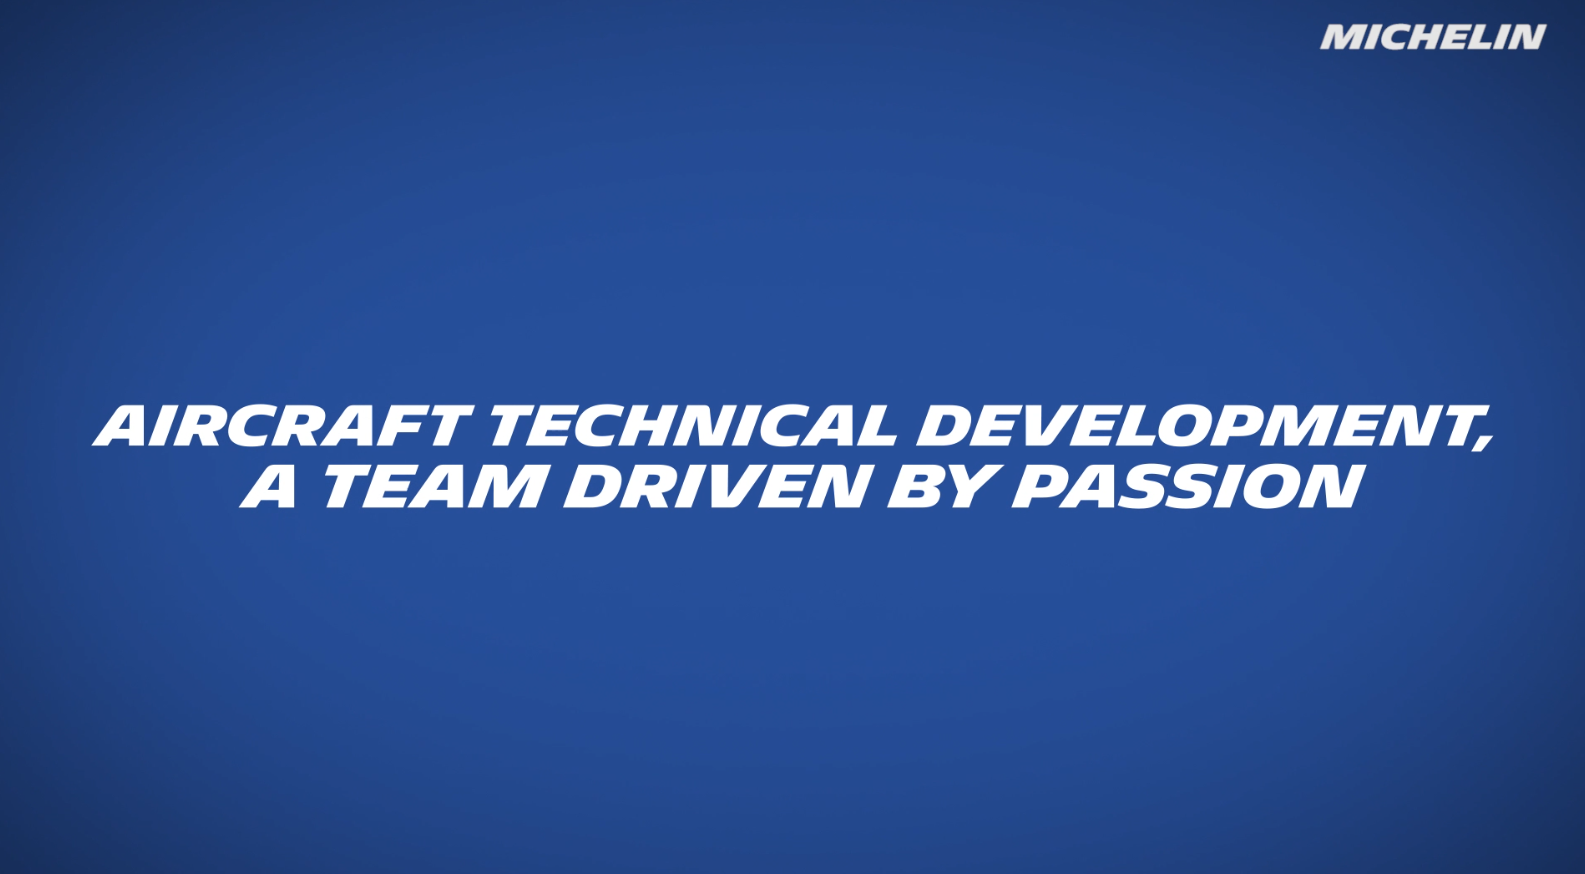 Discover: Aircraft technical development, a team driven by passion